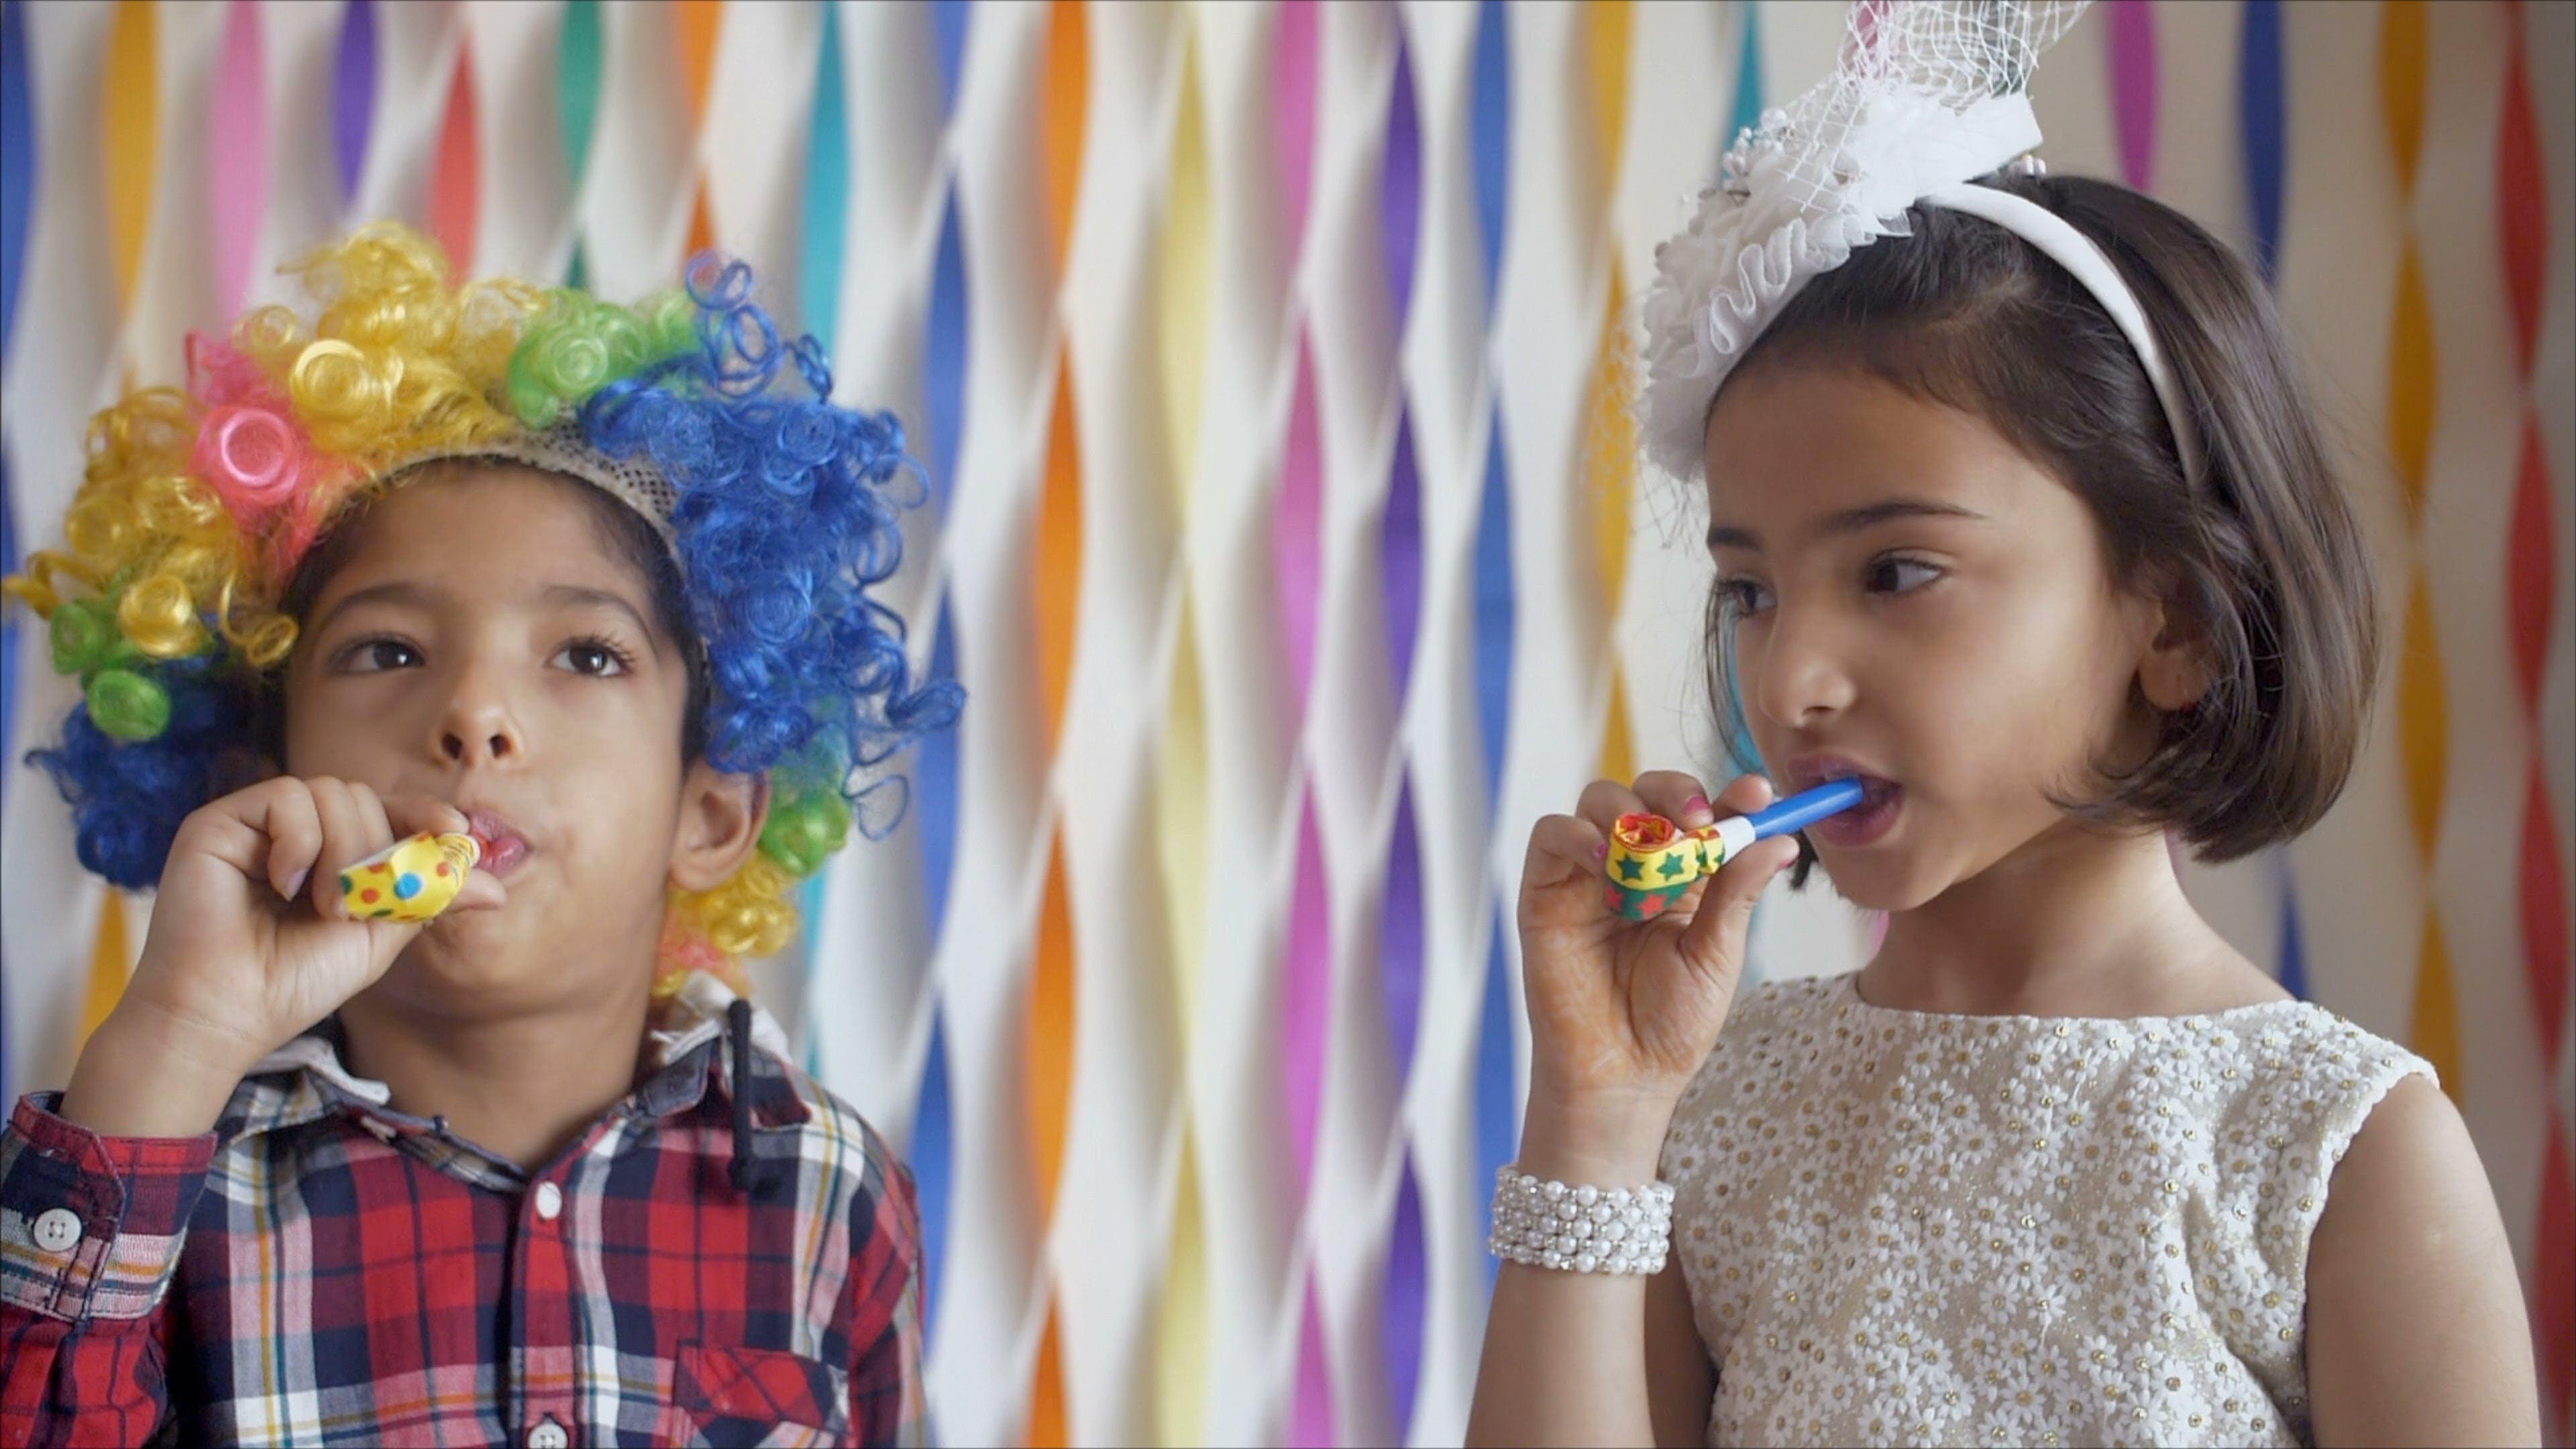 Slow Motion Video Of Kids Having Fun On A Party